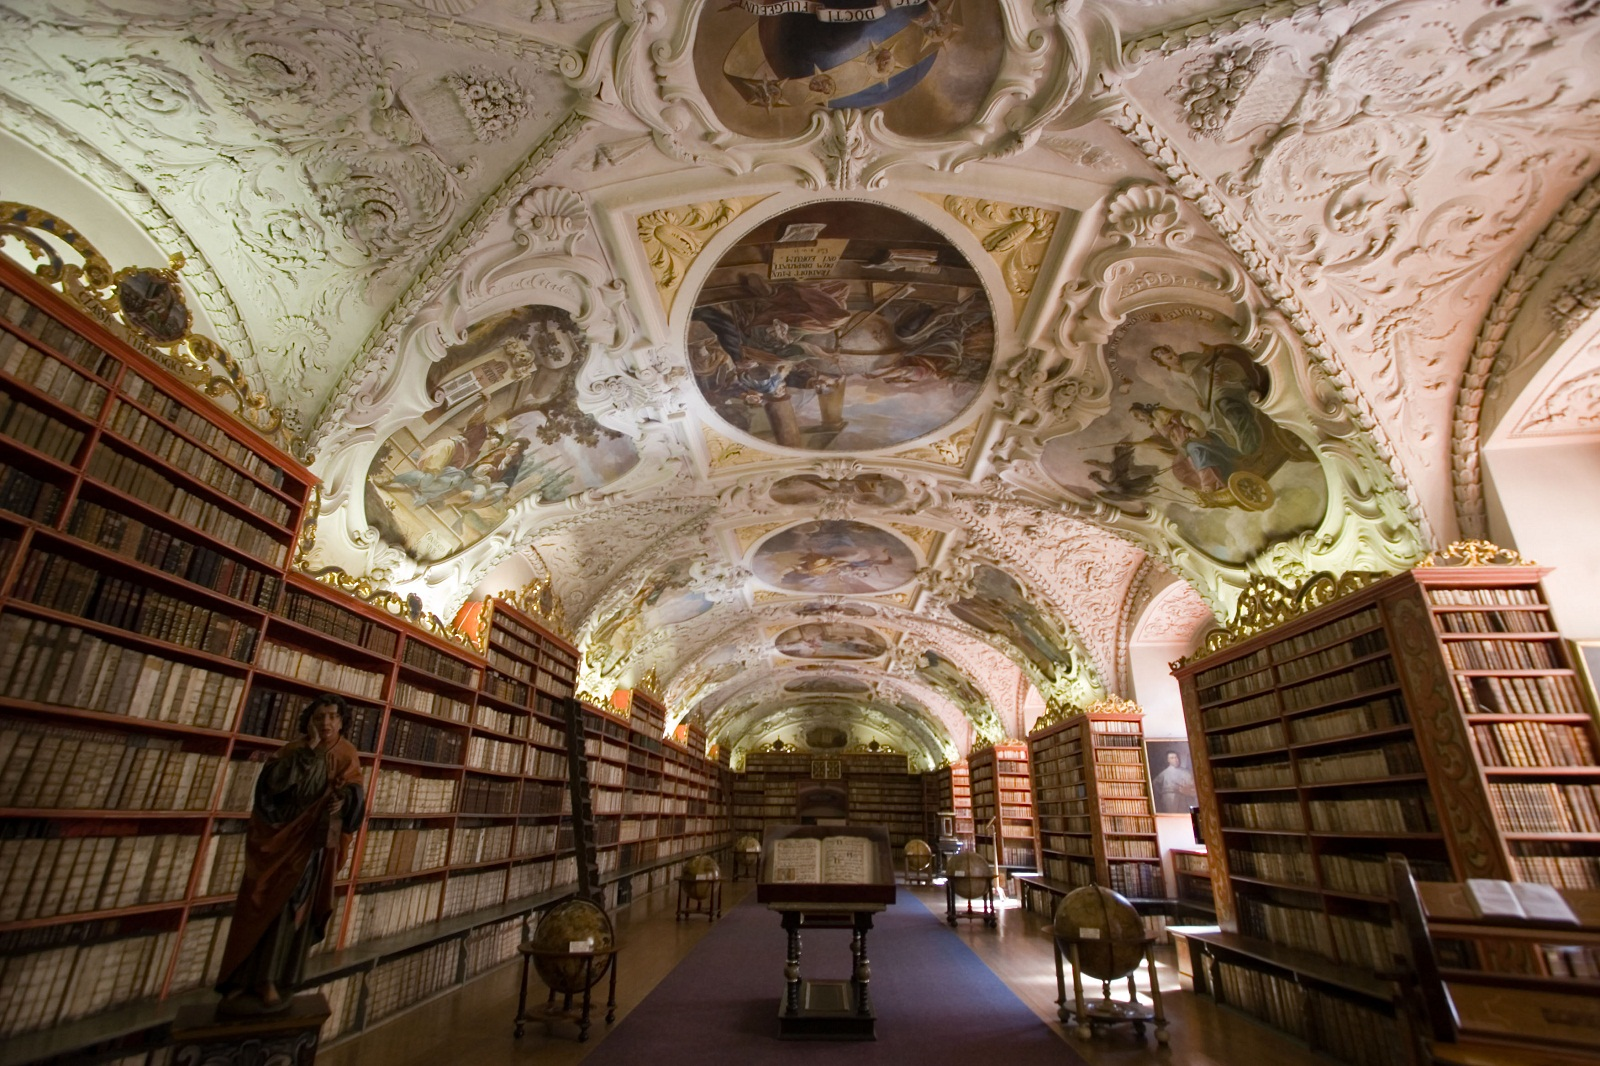 Strahov Monastery, Prague, Czech Republic, Library roof paintings